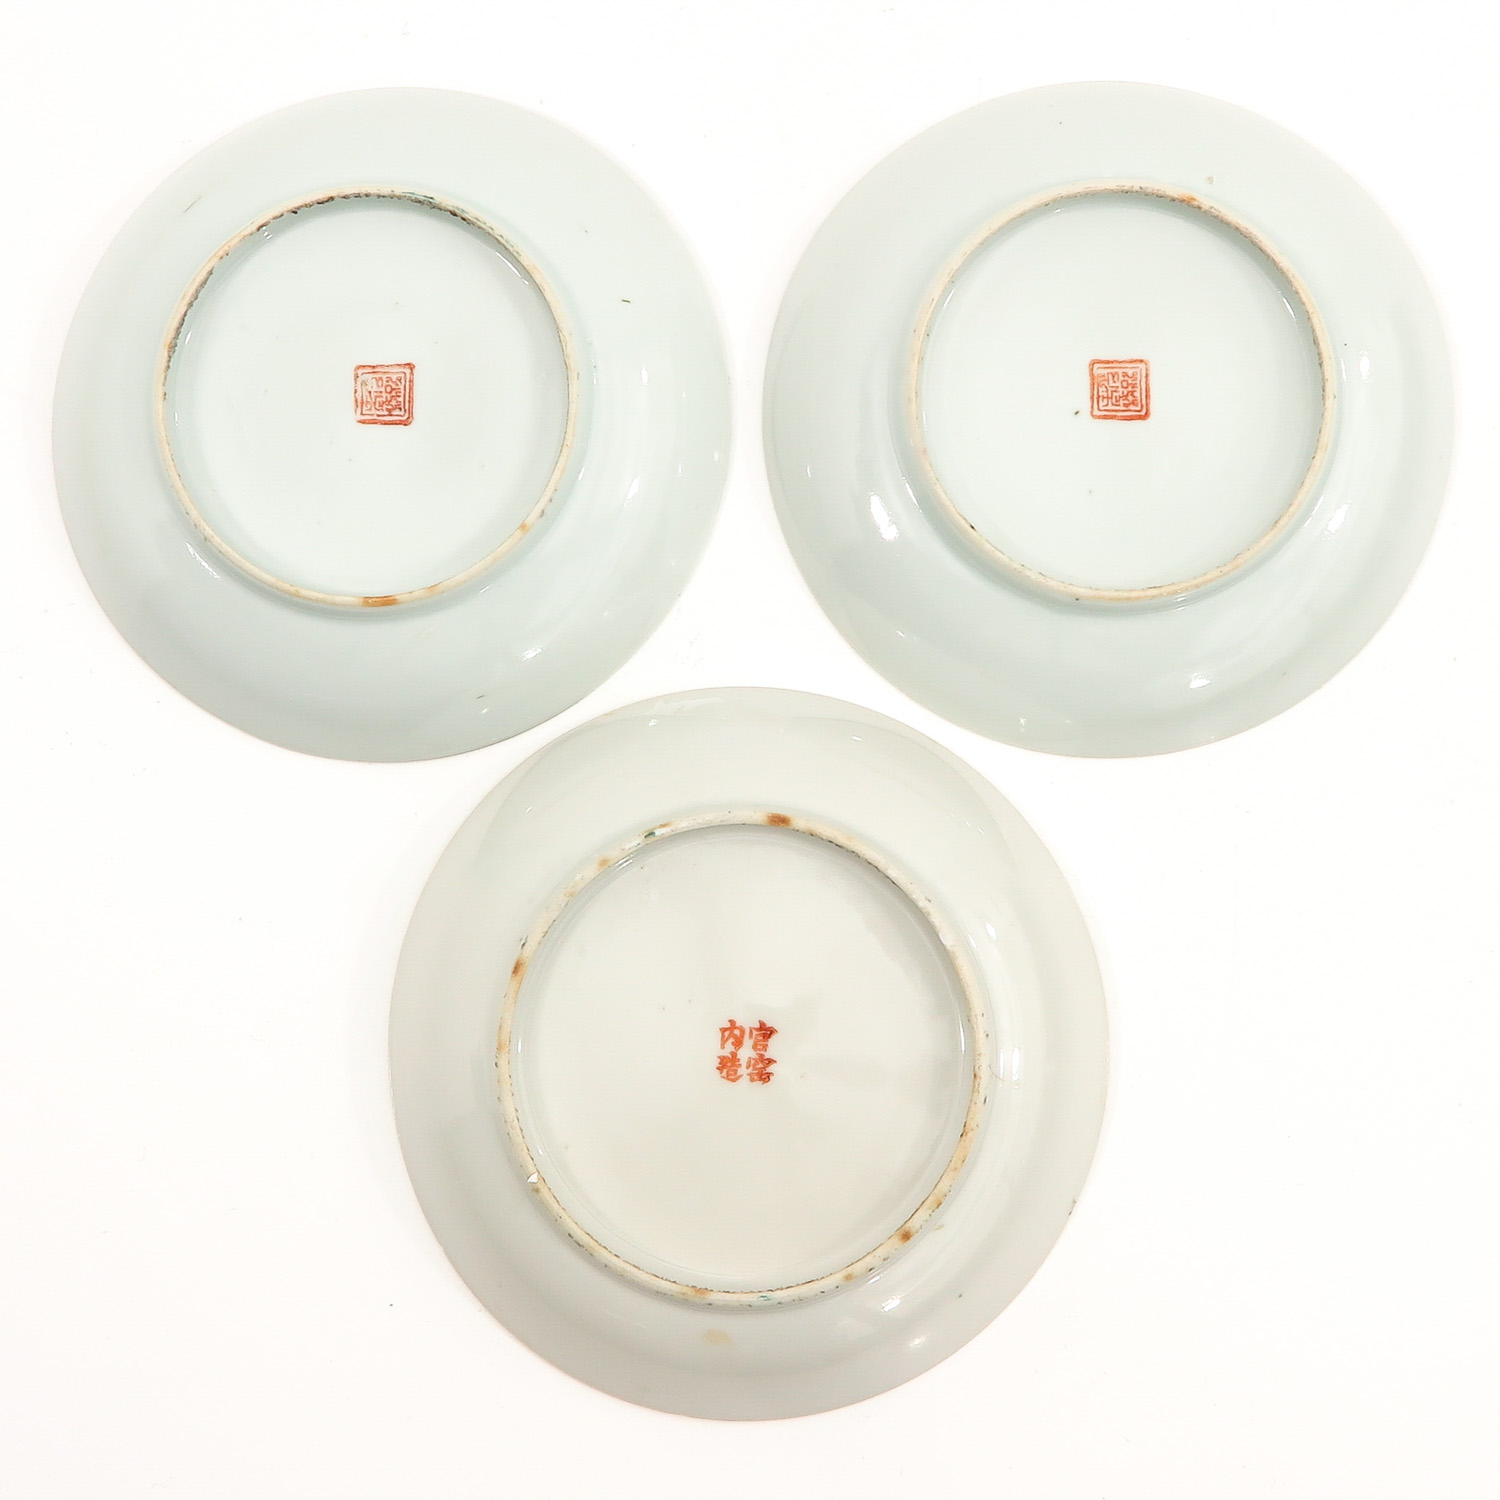 A Series of 3 Famille Rose Plates - Image 2 of 10